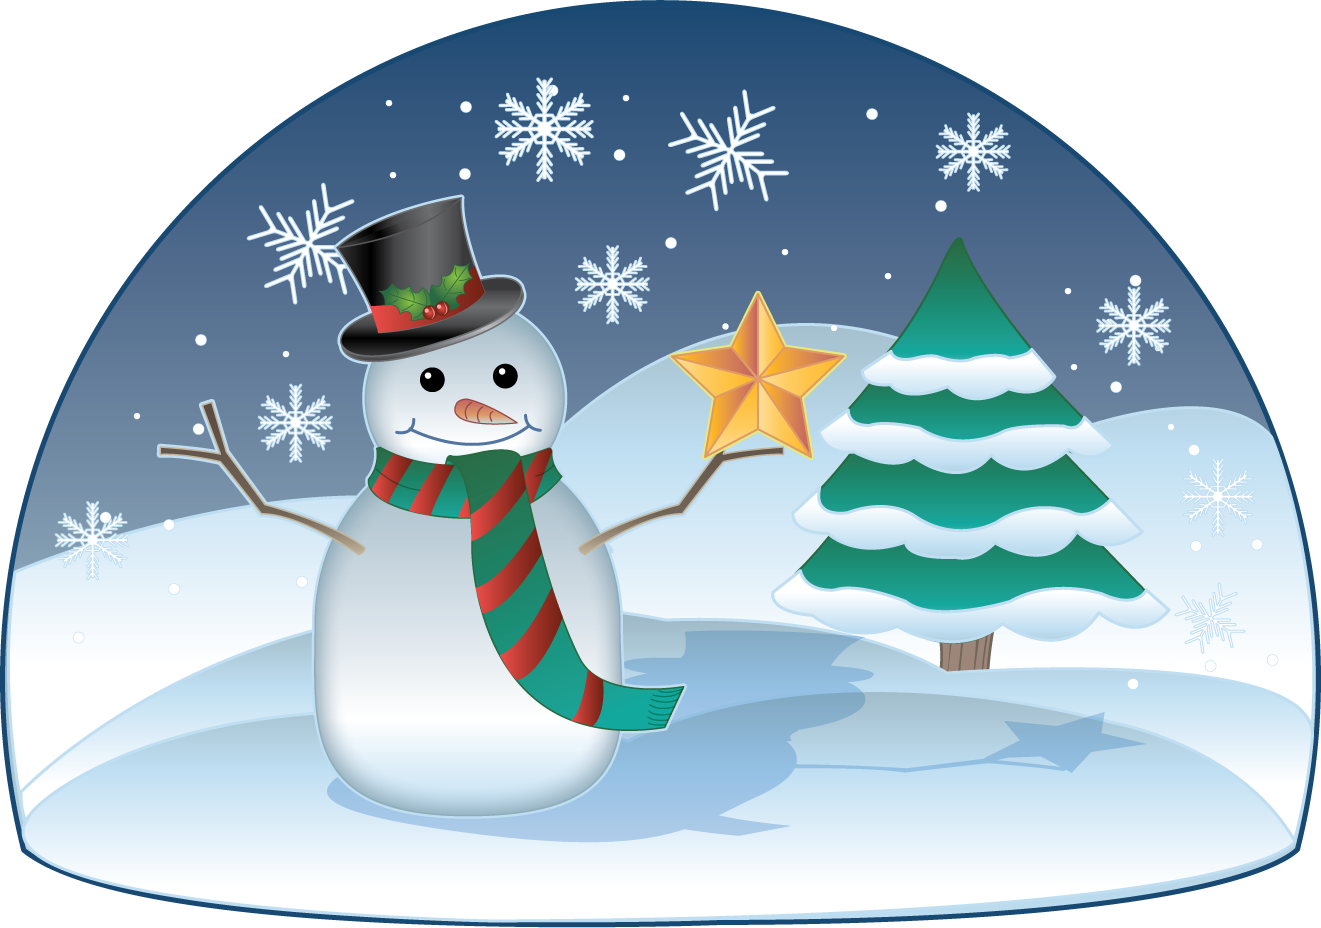 Winter holiday scene clipart clip art free clip art.